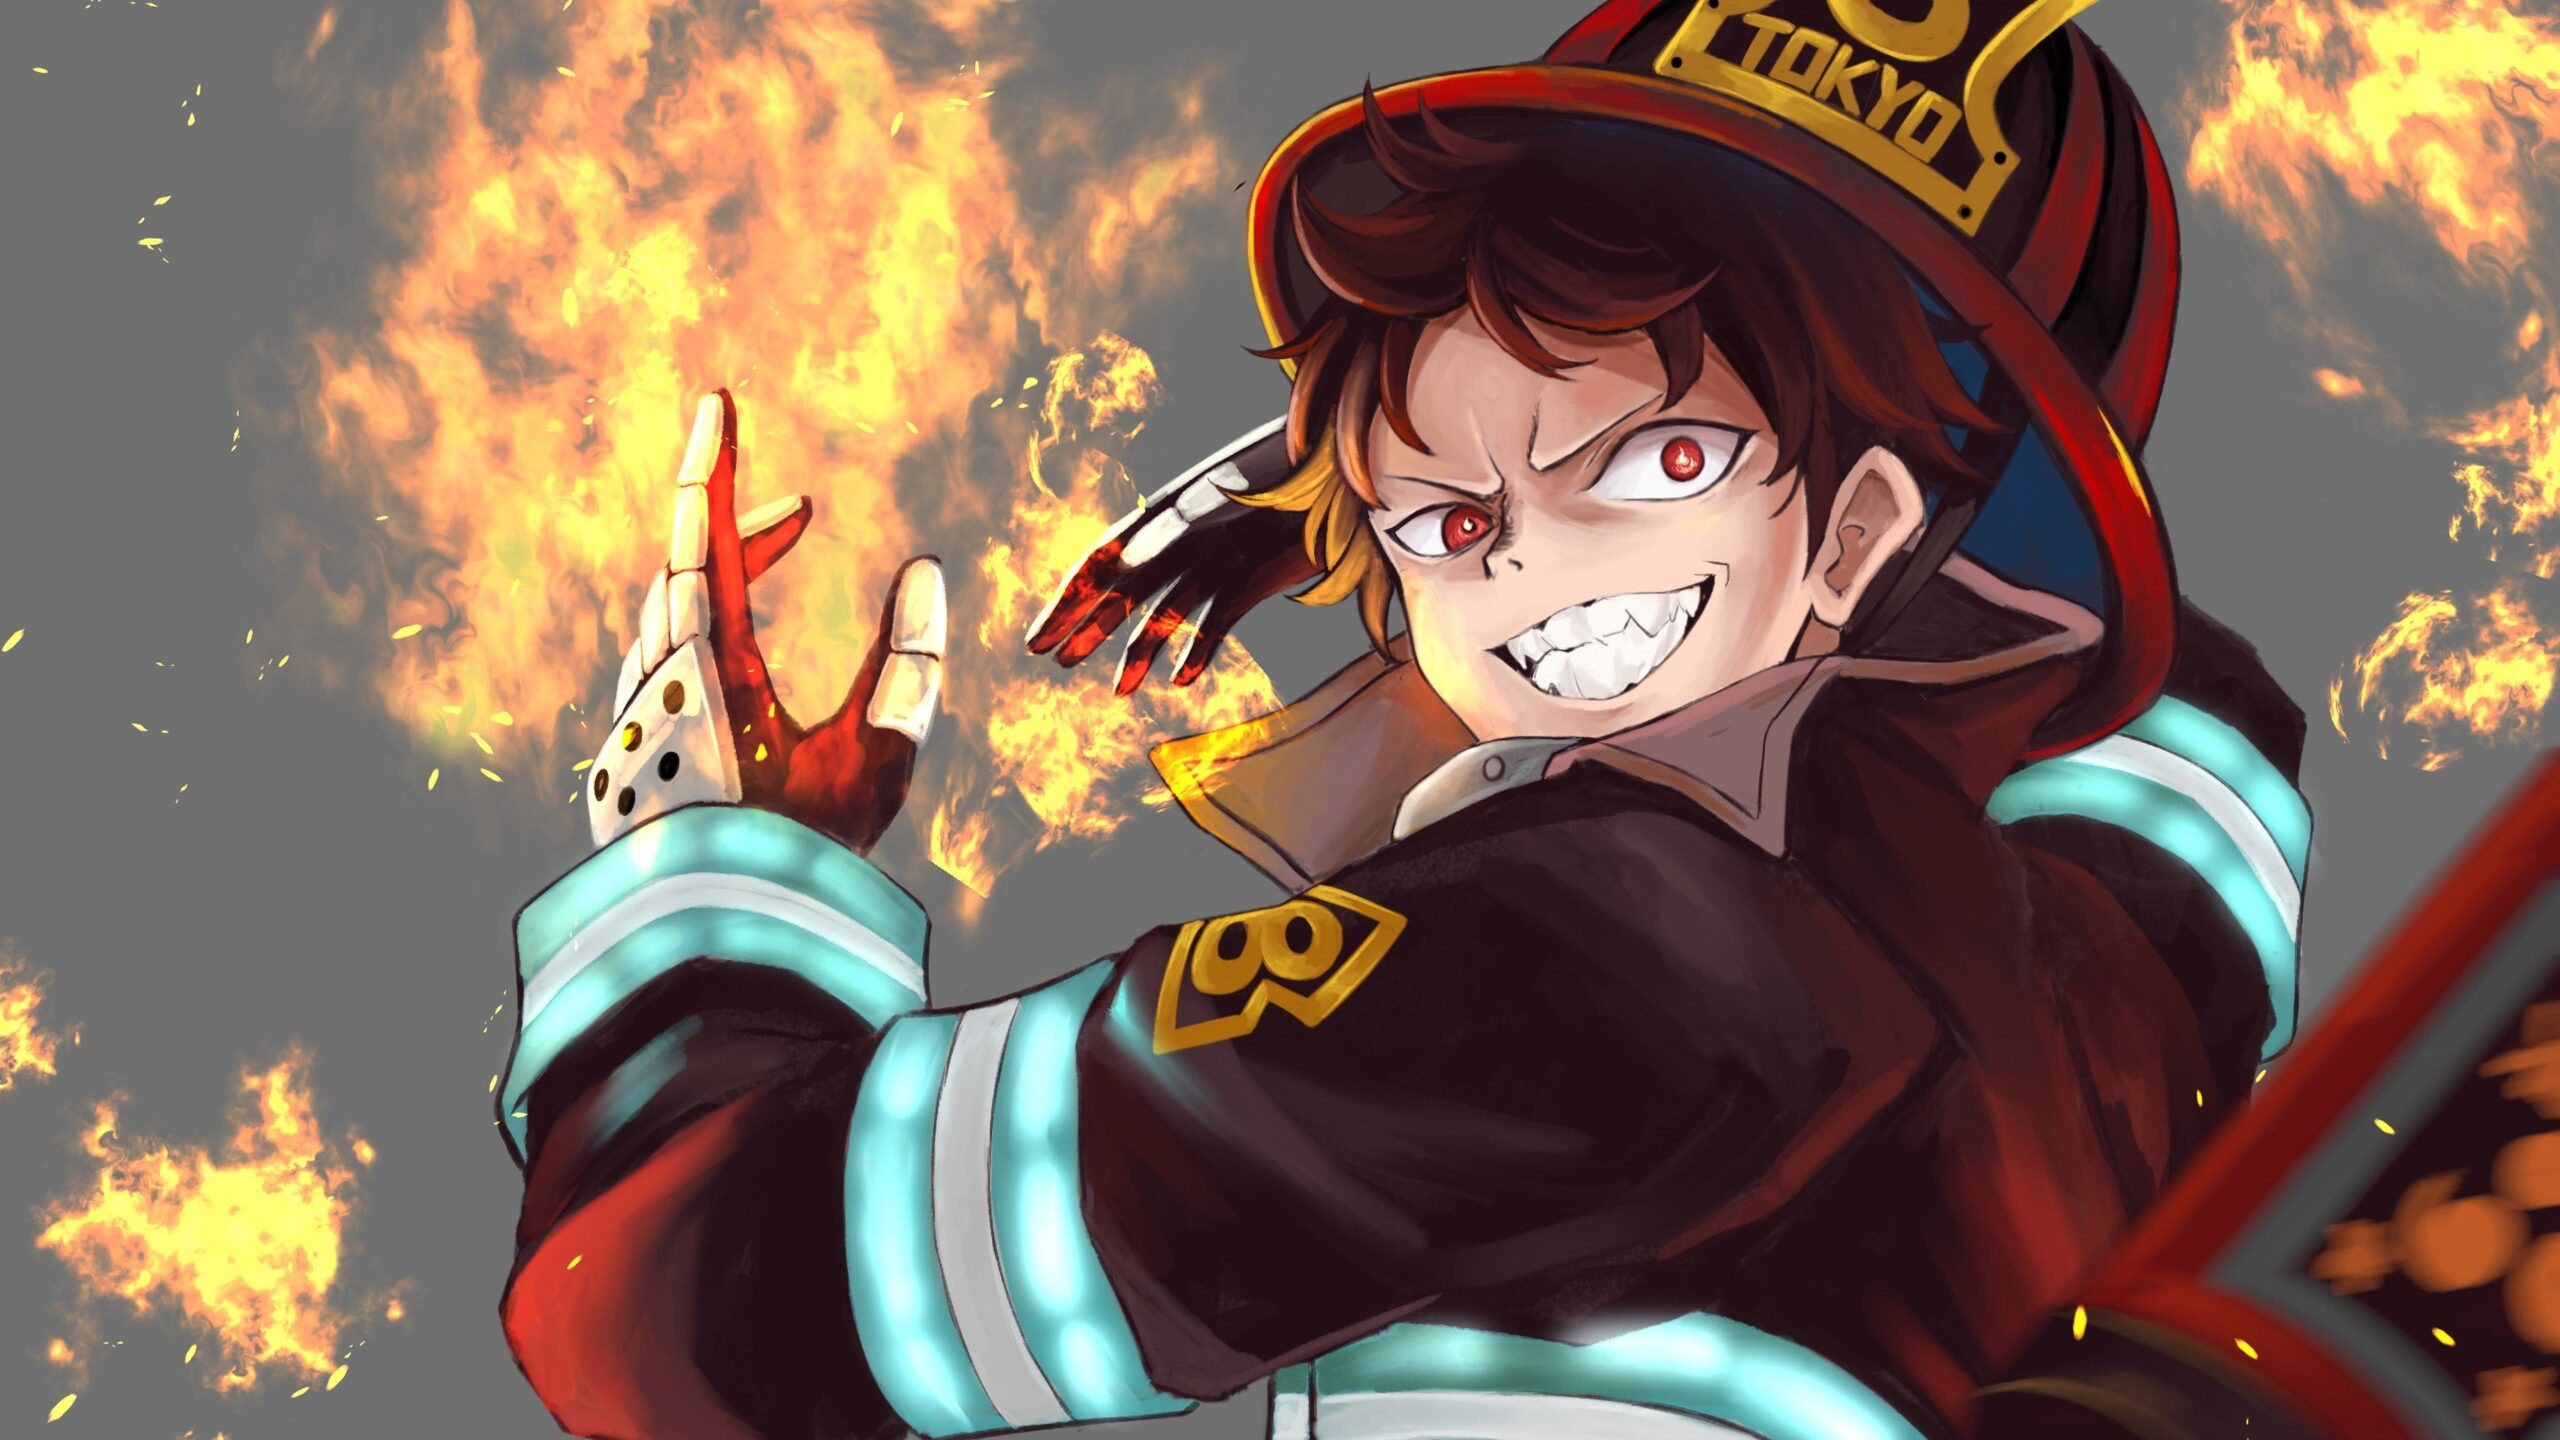 Fire Force Wallpapers Top 4k Background Download You can personalize your chromebook with a custom wallpaper for your desktop. fire force wallpapers top 4k